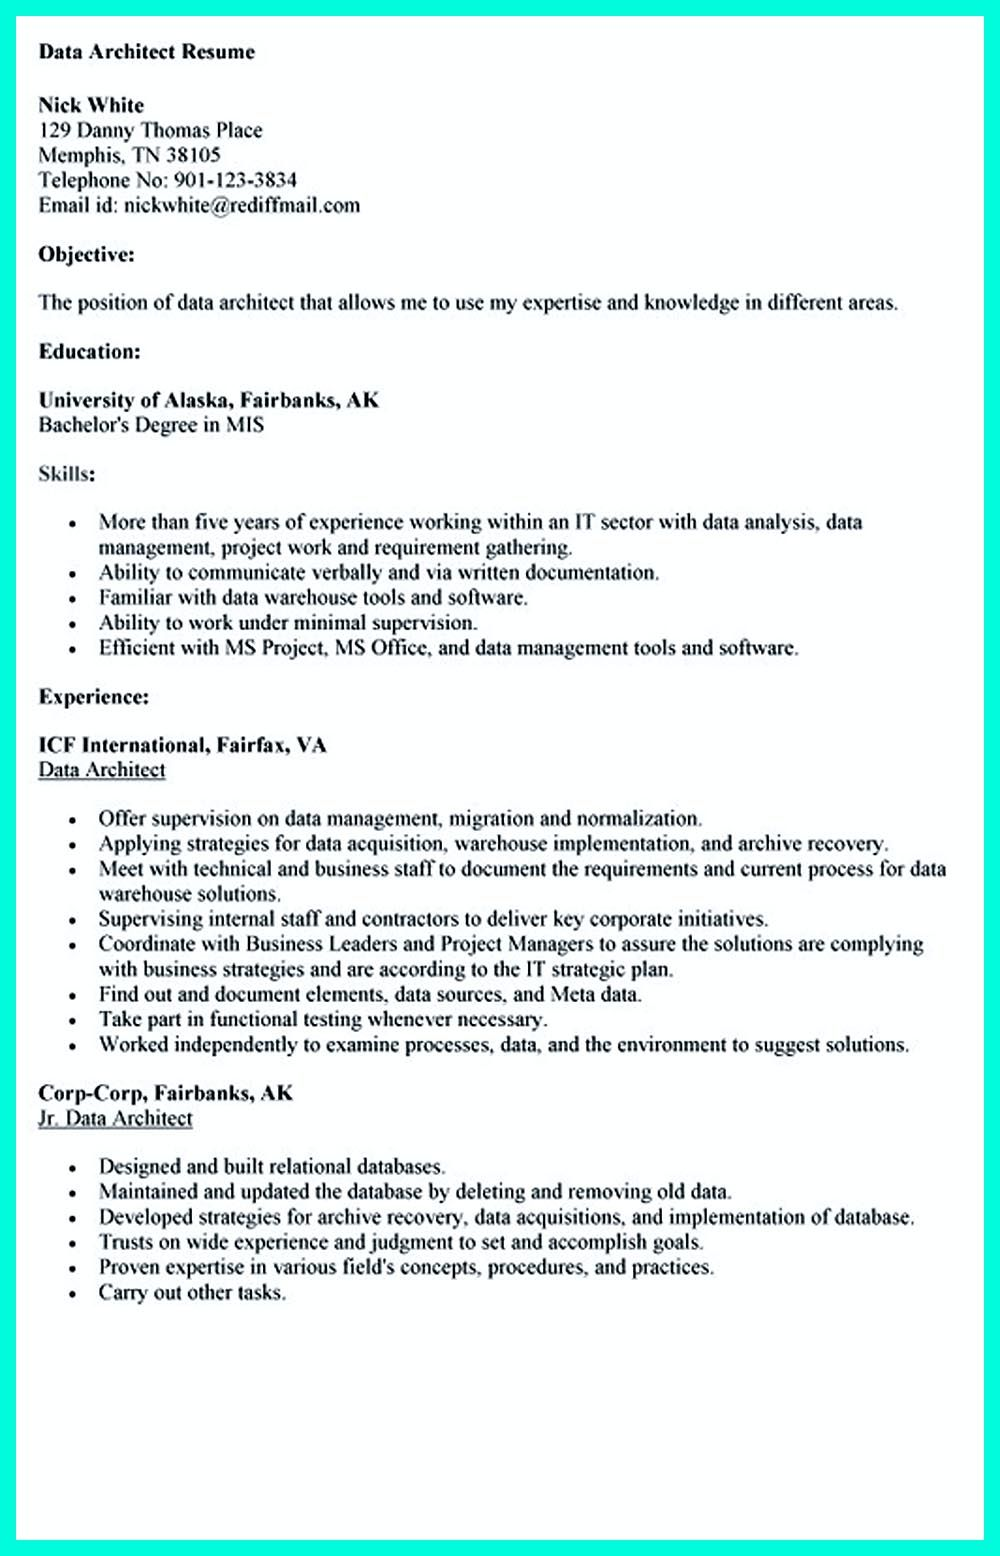 Resume Professional Profile resume writing a profile professional profile resume examples resume examples resume examples professional profile resume examples In The Data Architect Resume One Must Describe The Professional Profile Of The Applicant As